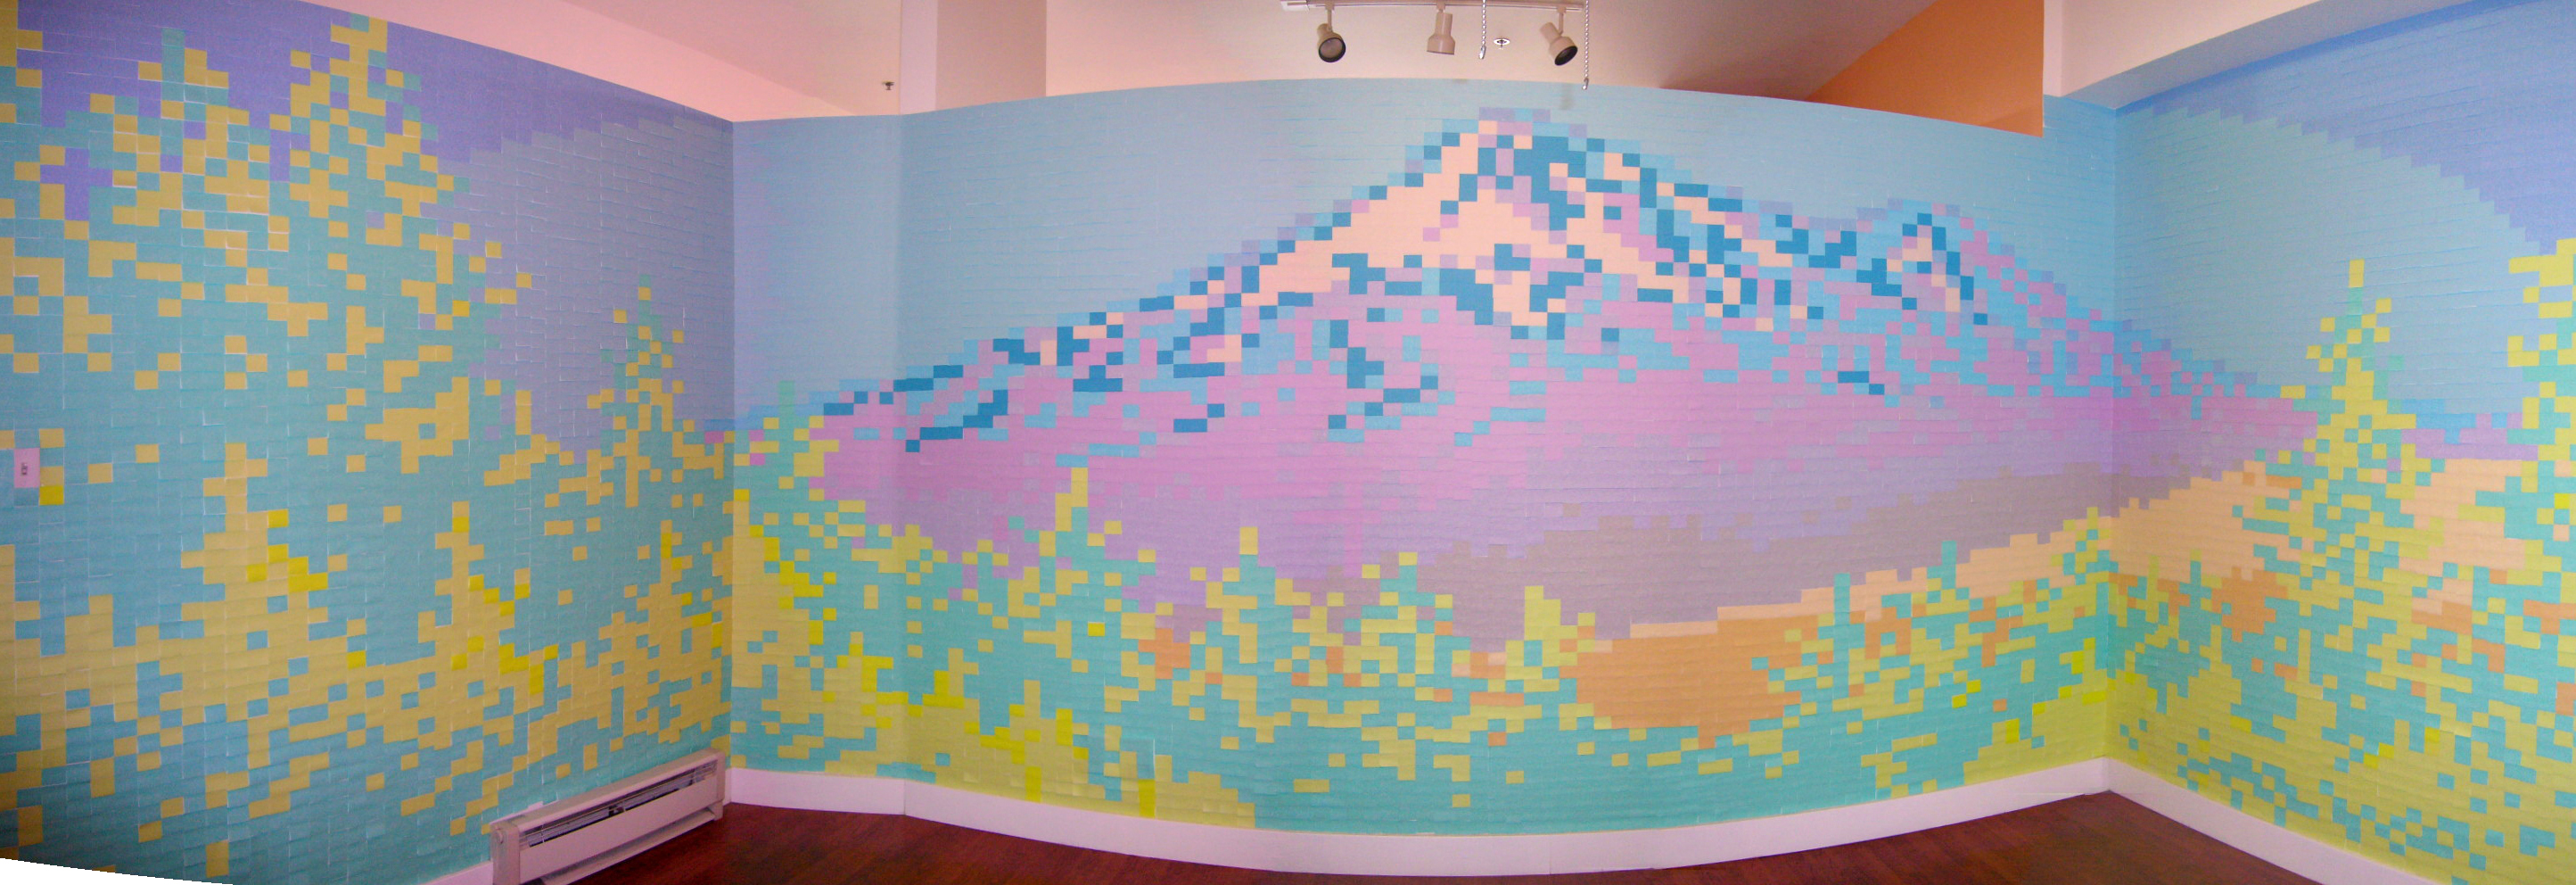 mt. shasta post it notes